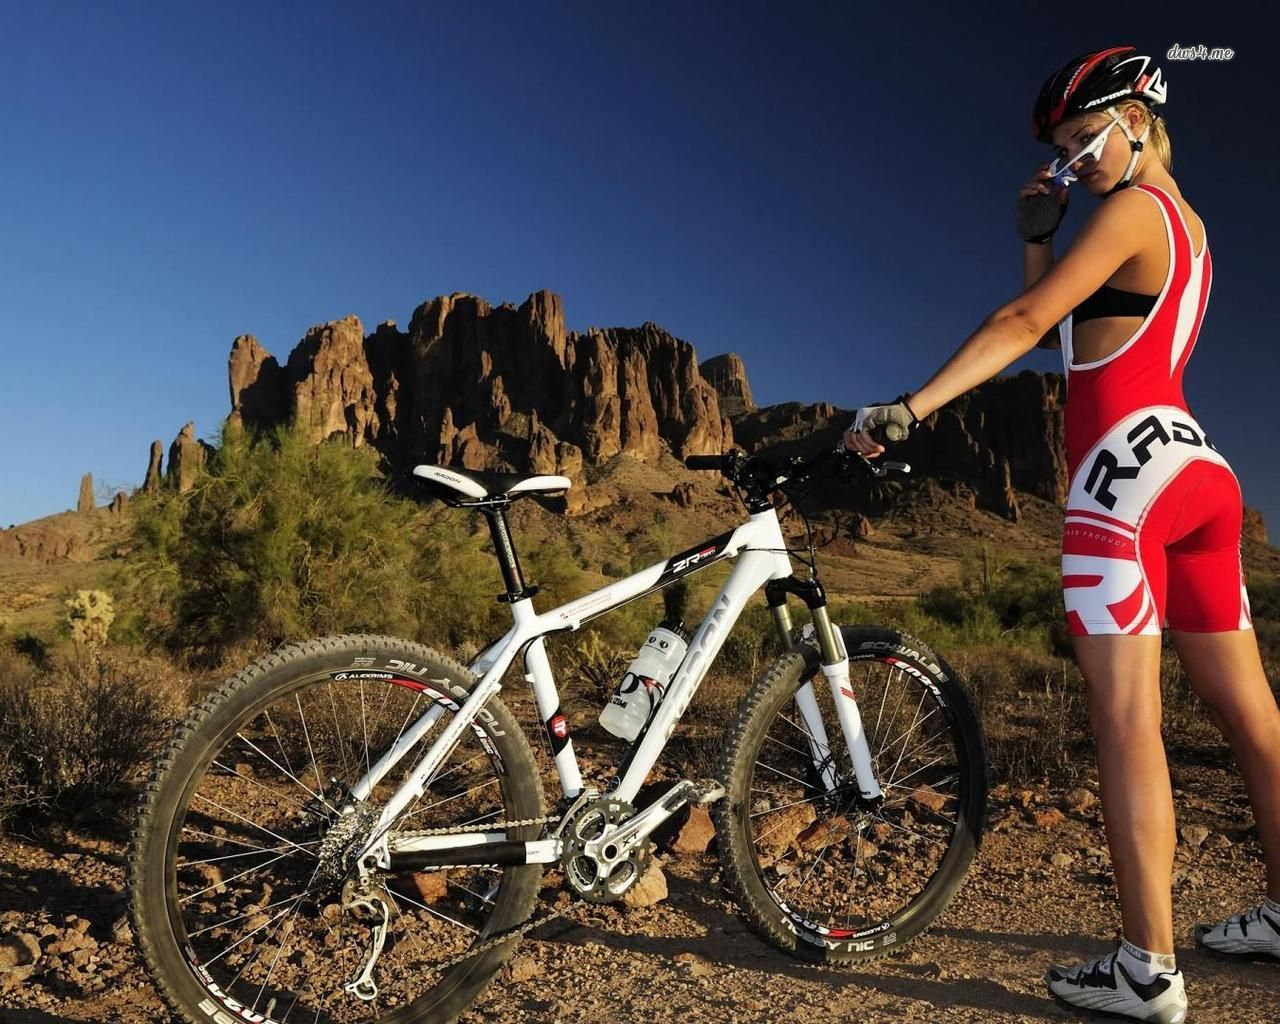 Mountain Road Bike Wallpapers: Wallpapers Mtb Woman With Mountain Bike Sport 1280x1024